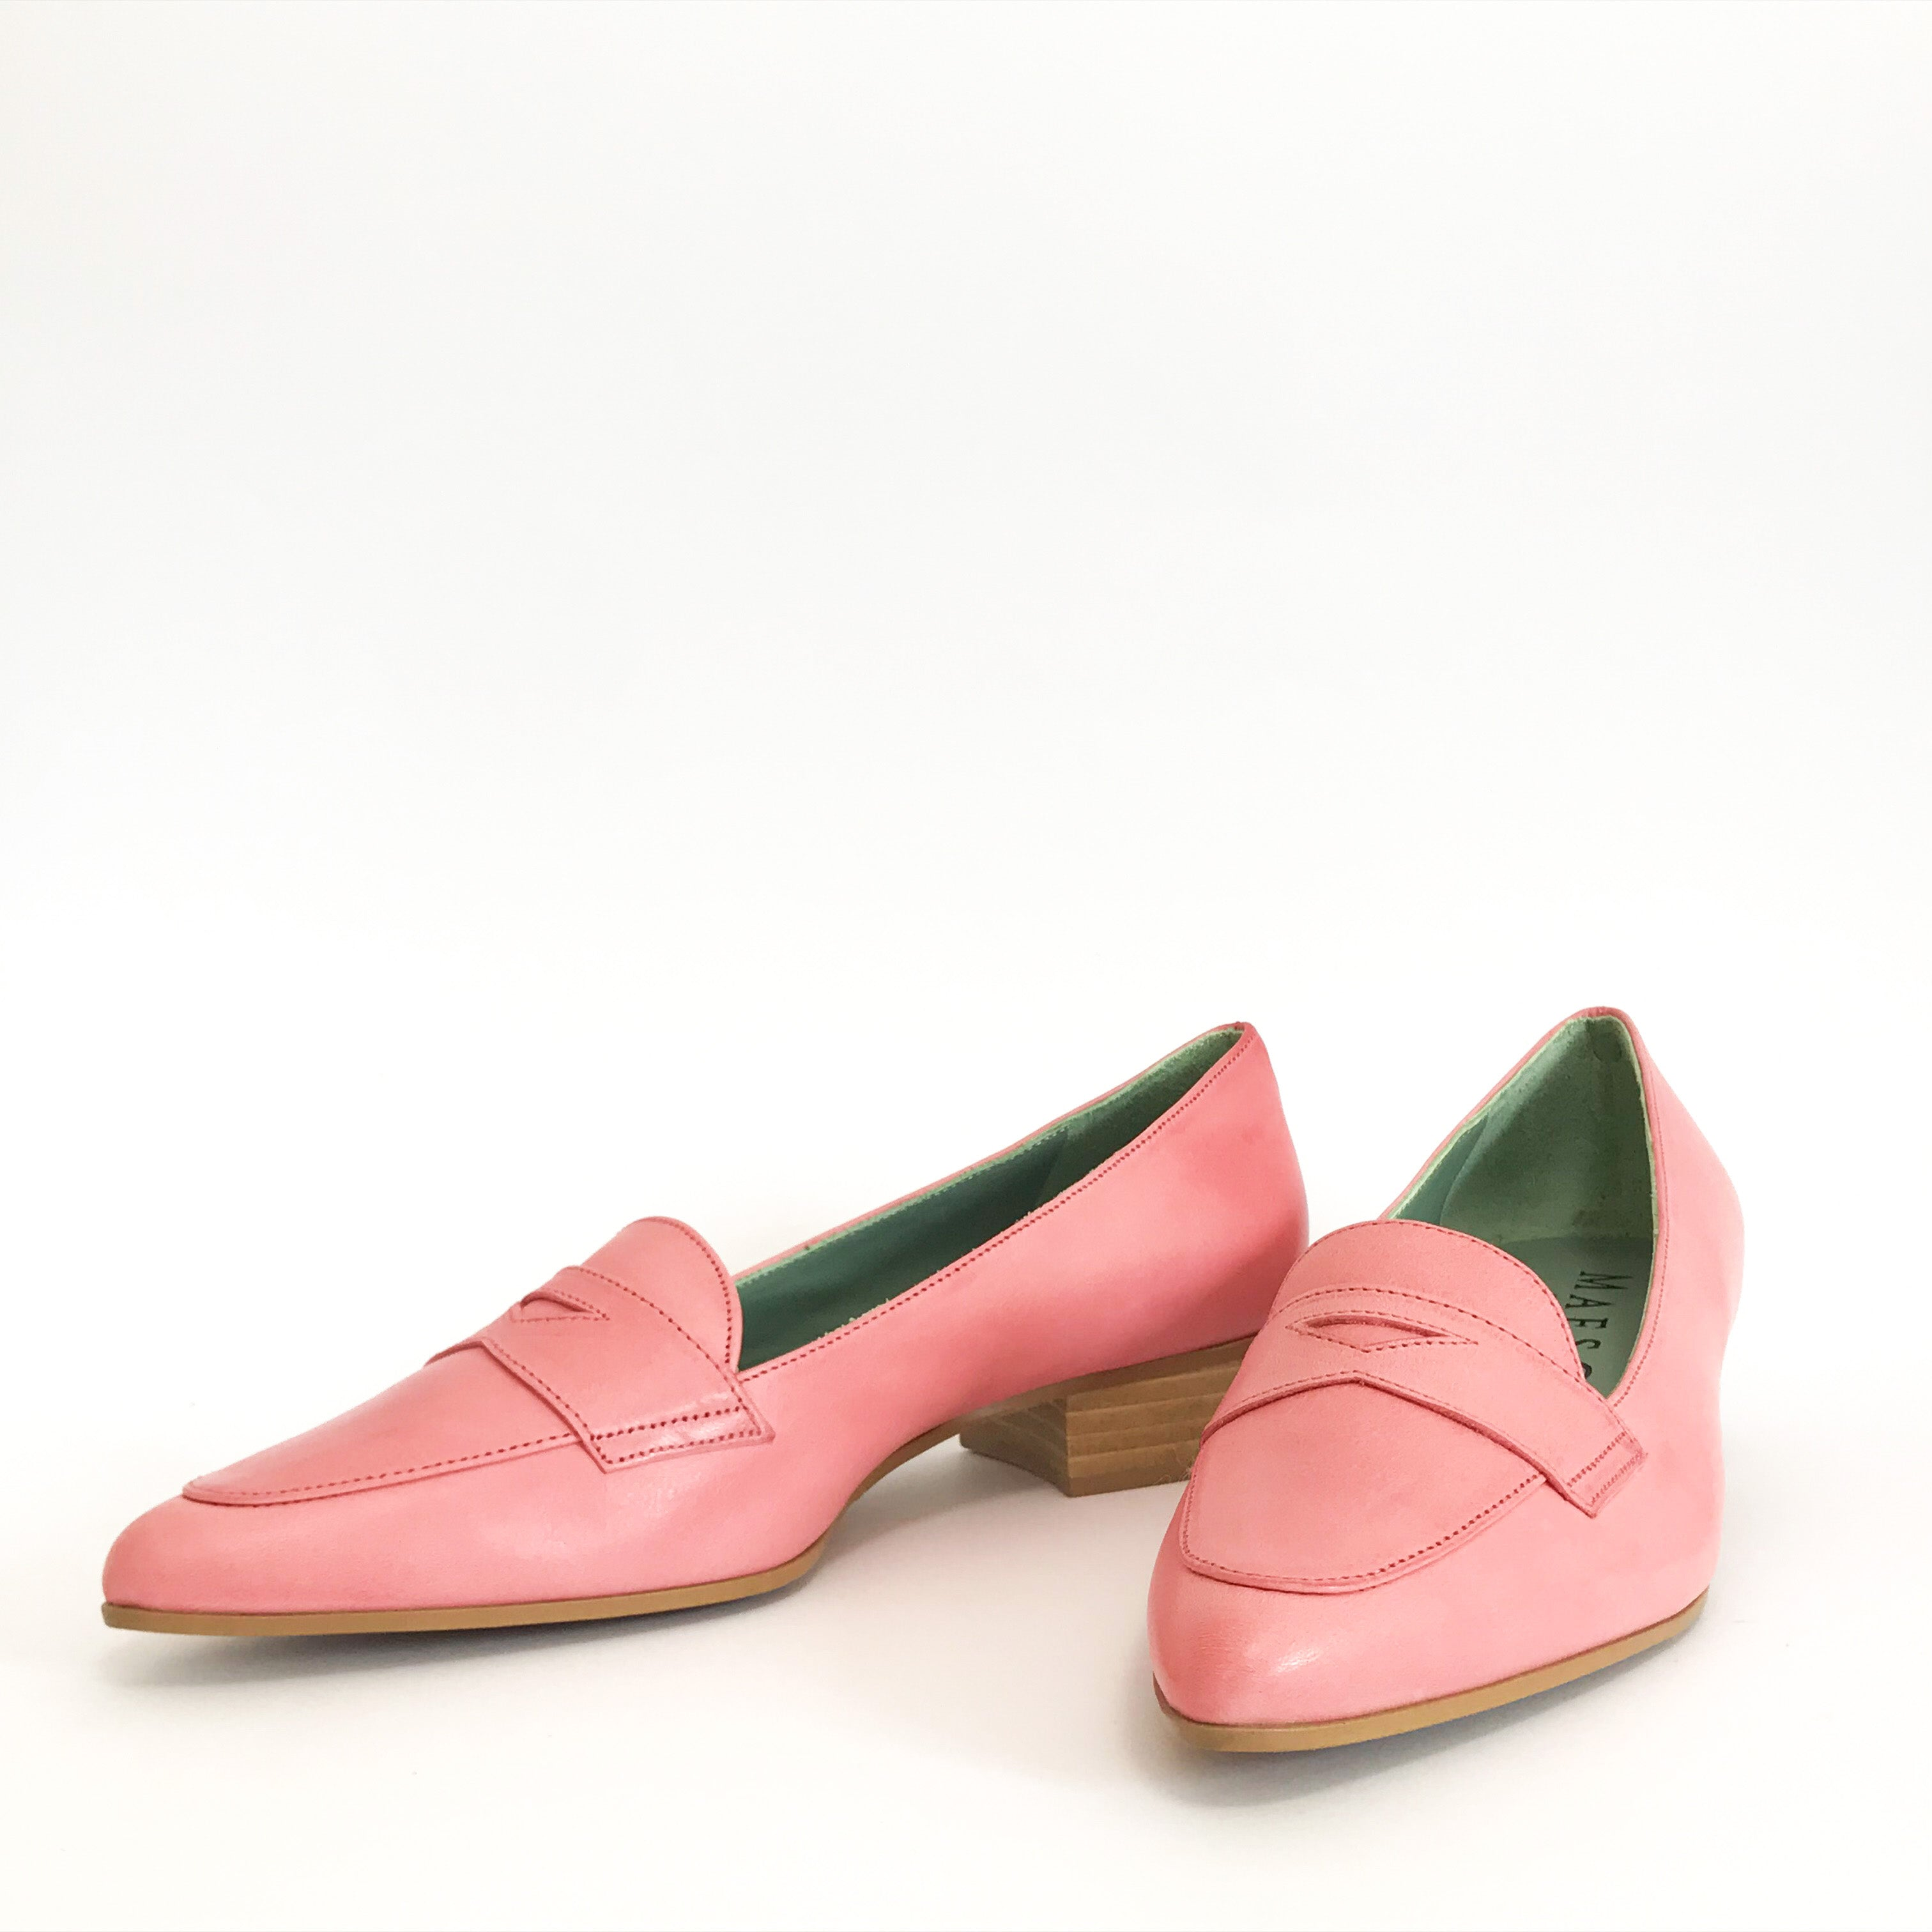 Fuchsia Pink Women Ladies Italian Vegetable Tanned Leather Low Heel Dress Shoe Loafer